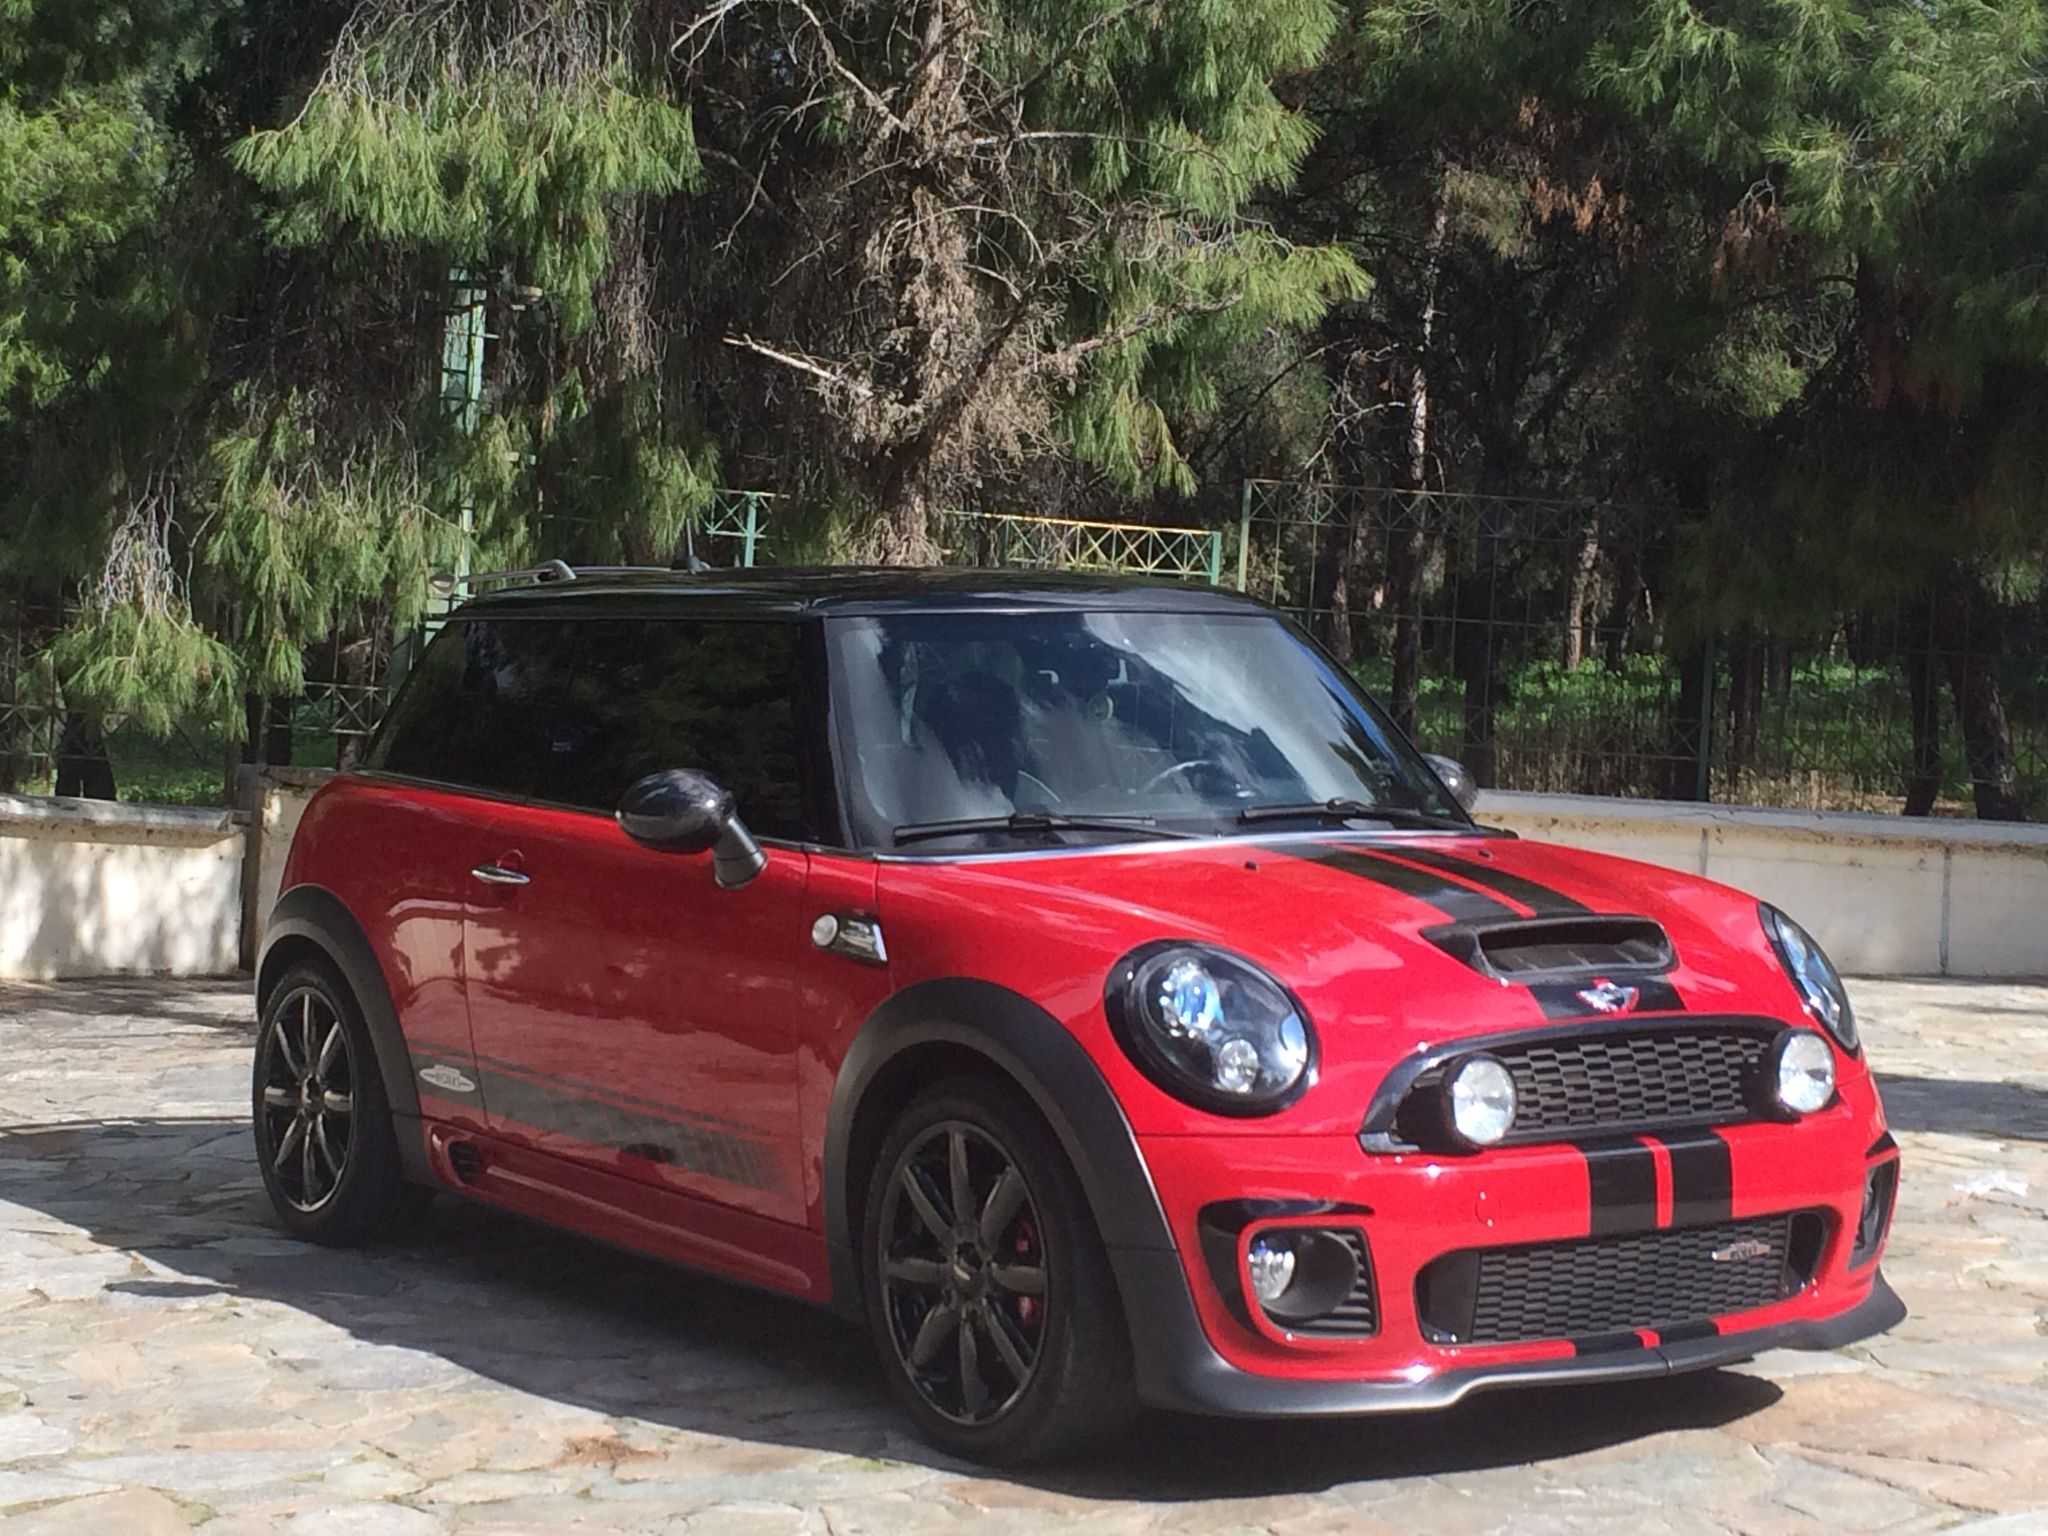 3bb81c0cbe15f4442f4ccdc2382585ae jpg 938 704 pixel mini pinterest red black mini cooper sport and sports cars